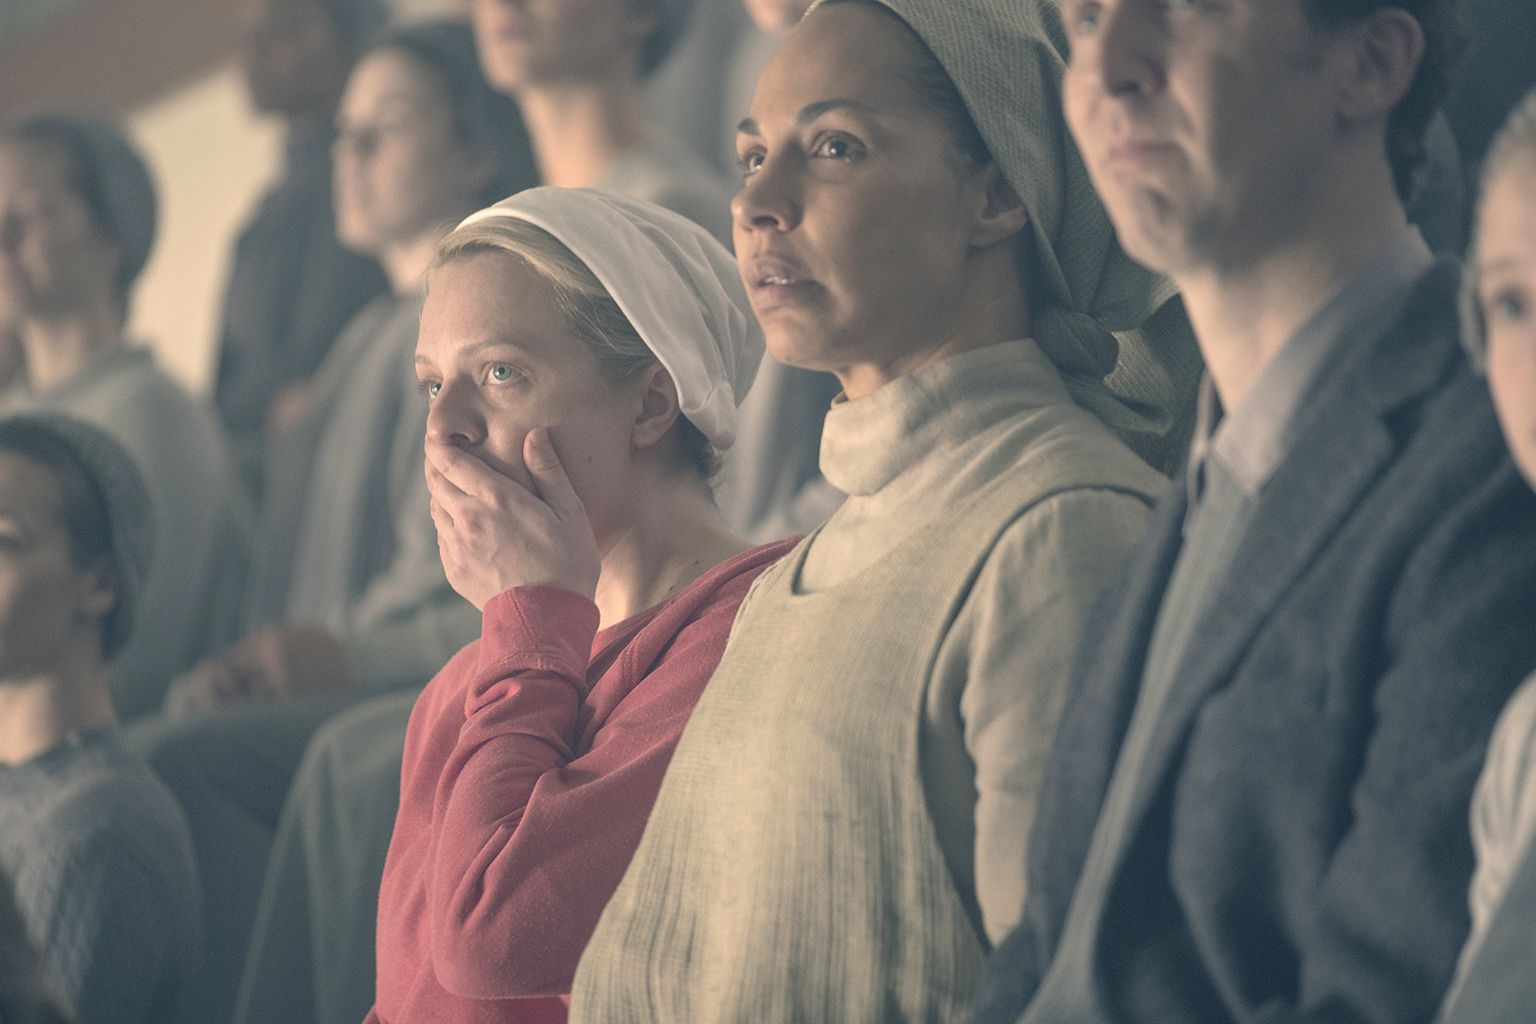 The Handmaids Tale Season 2 Episode 12 Brings More Horror and a Shaky Truce